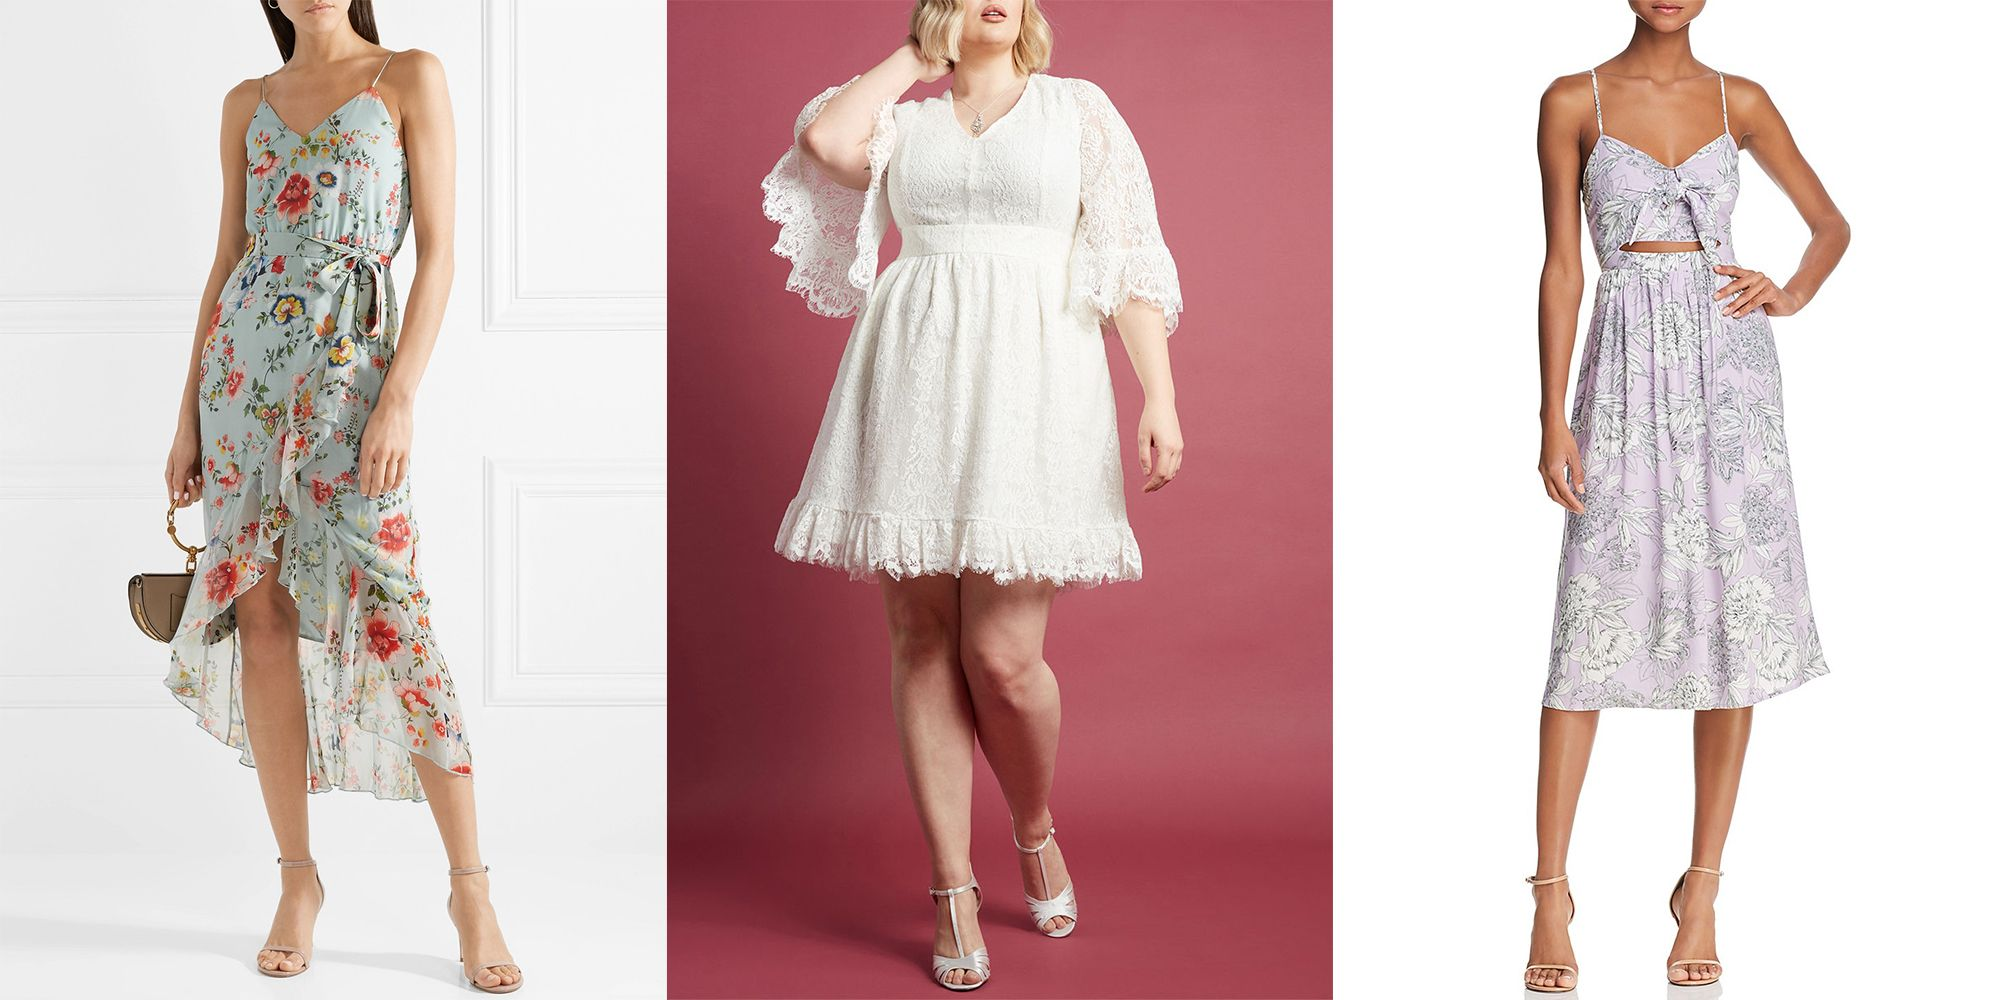 Bridal Shower Dresses - What to Wear to a Bridal Shower